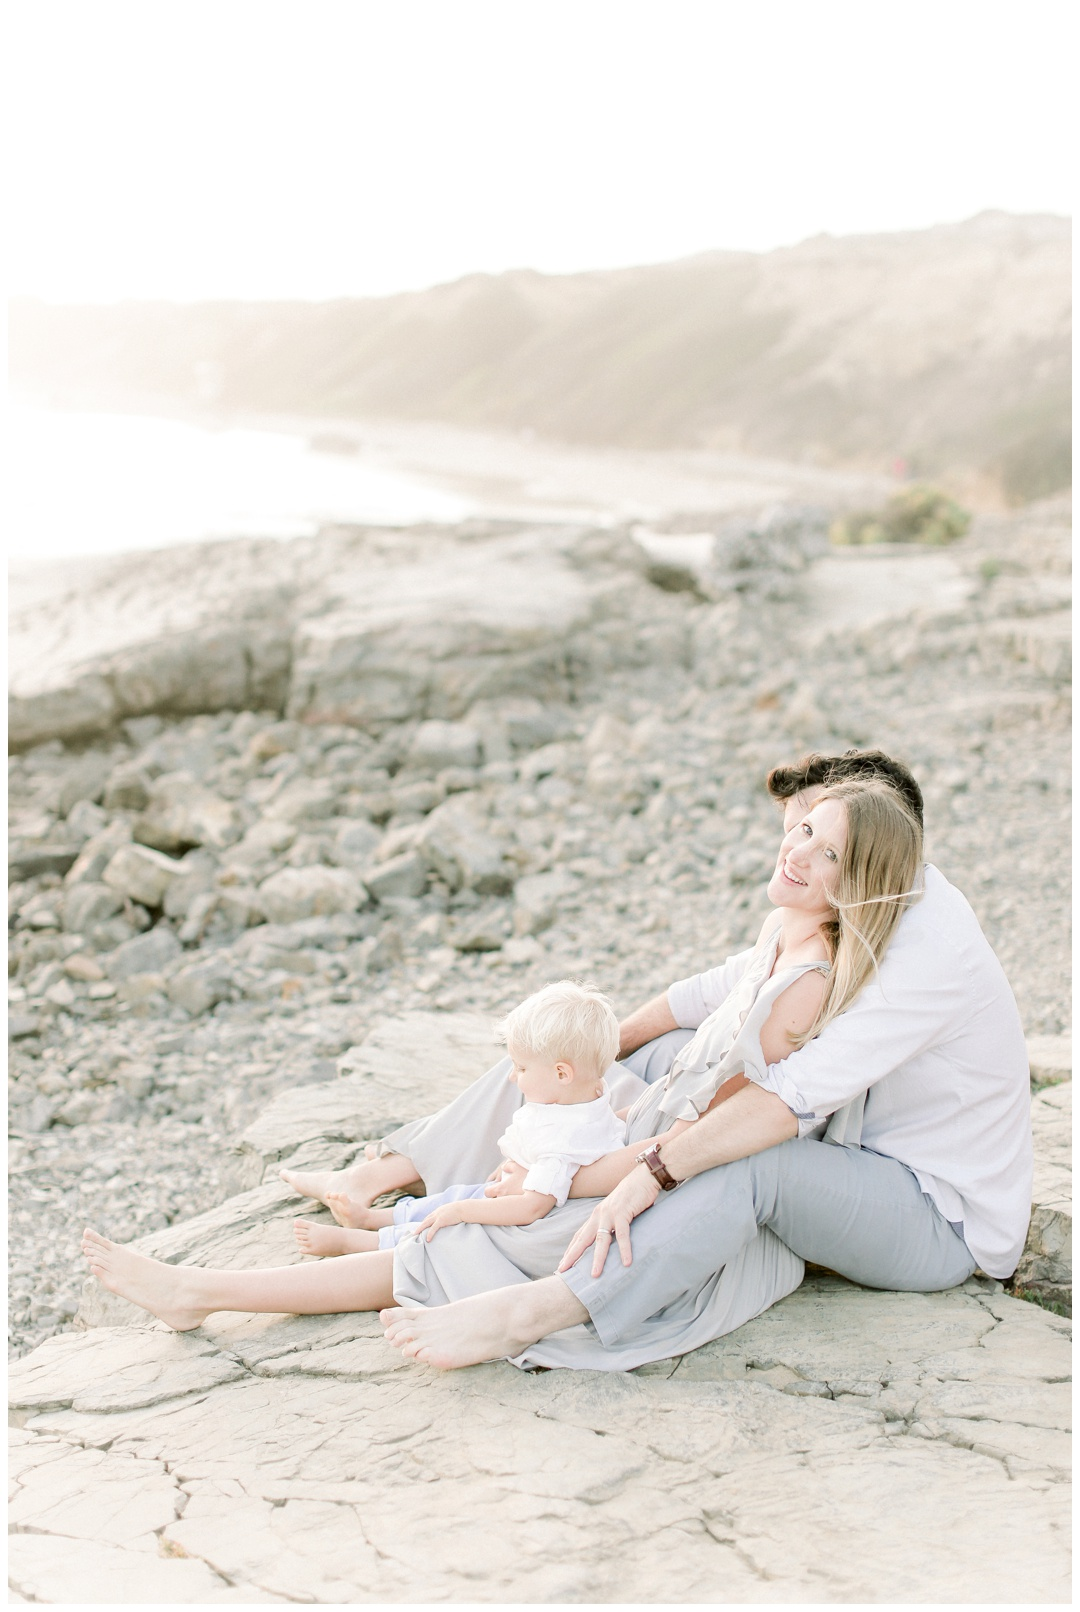 The_Epler's_Family_Newport_Beach_Family_Photographer_Orange_County_Family_Photography_Cori_Kleckner_Photography_Orange_County_Beach_Photographer_Family_Photos_Session_Crystal_Cove_Session__1433.jpg